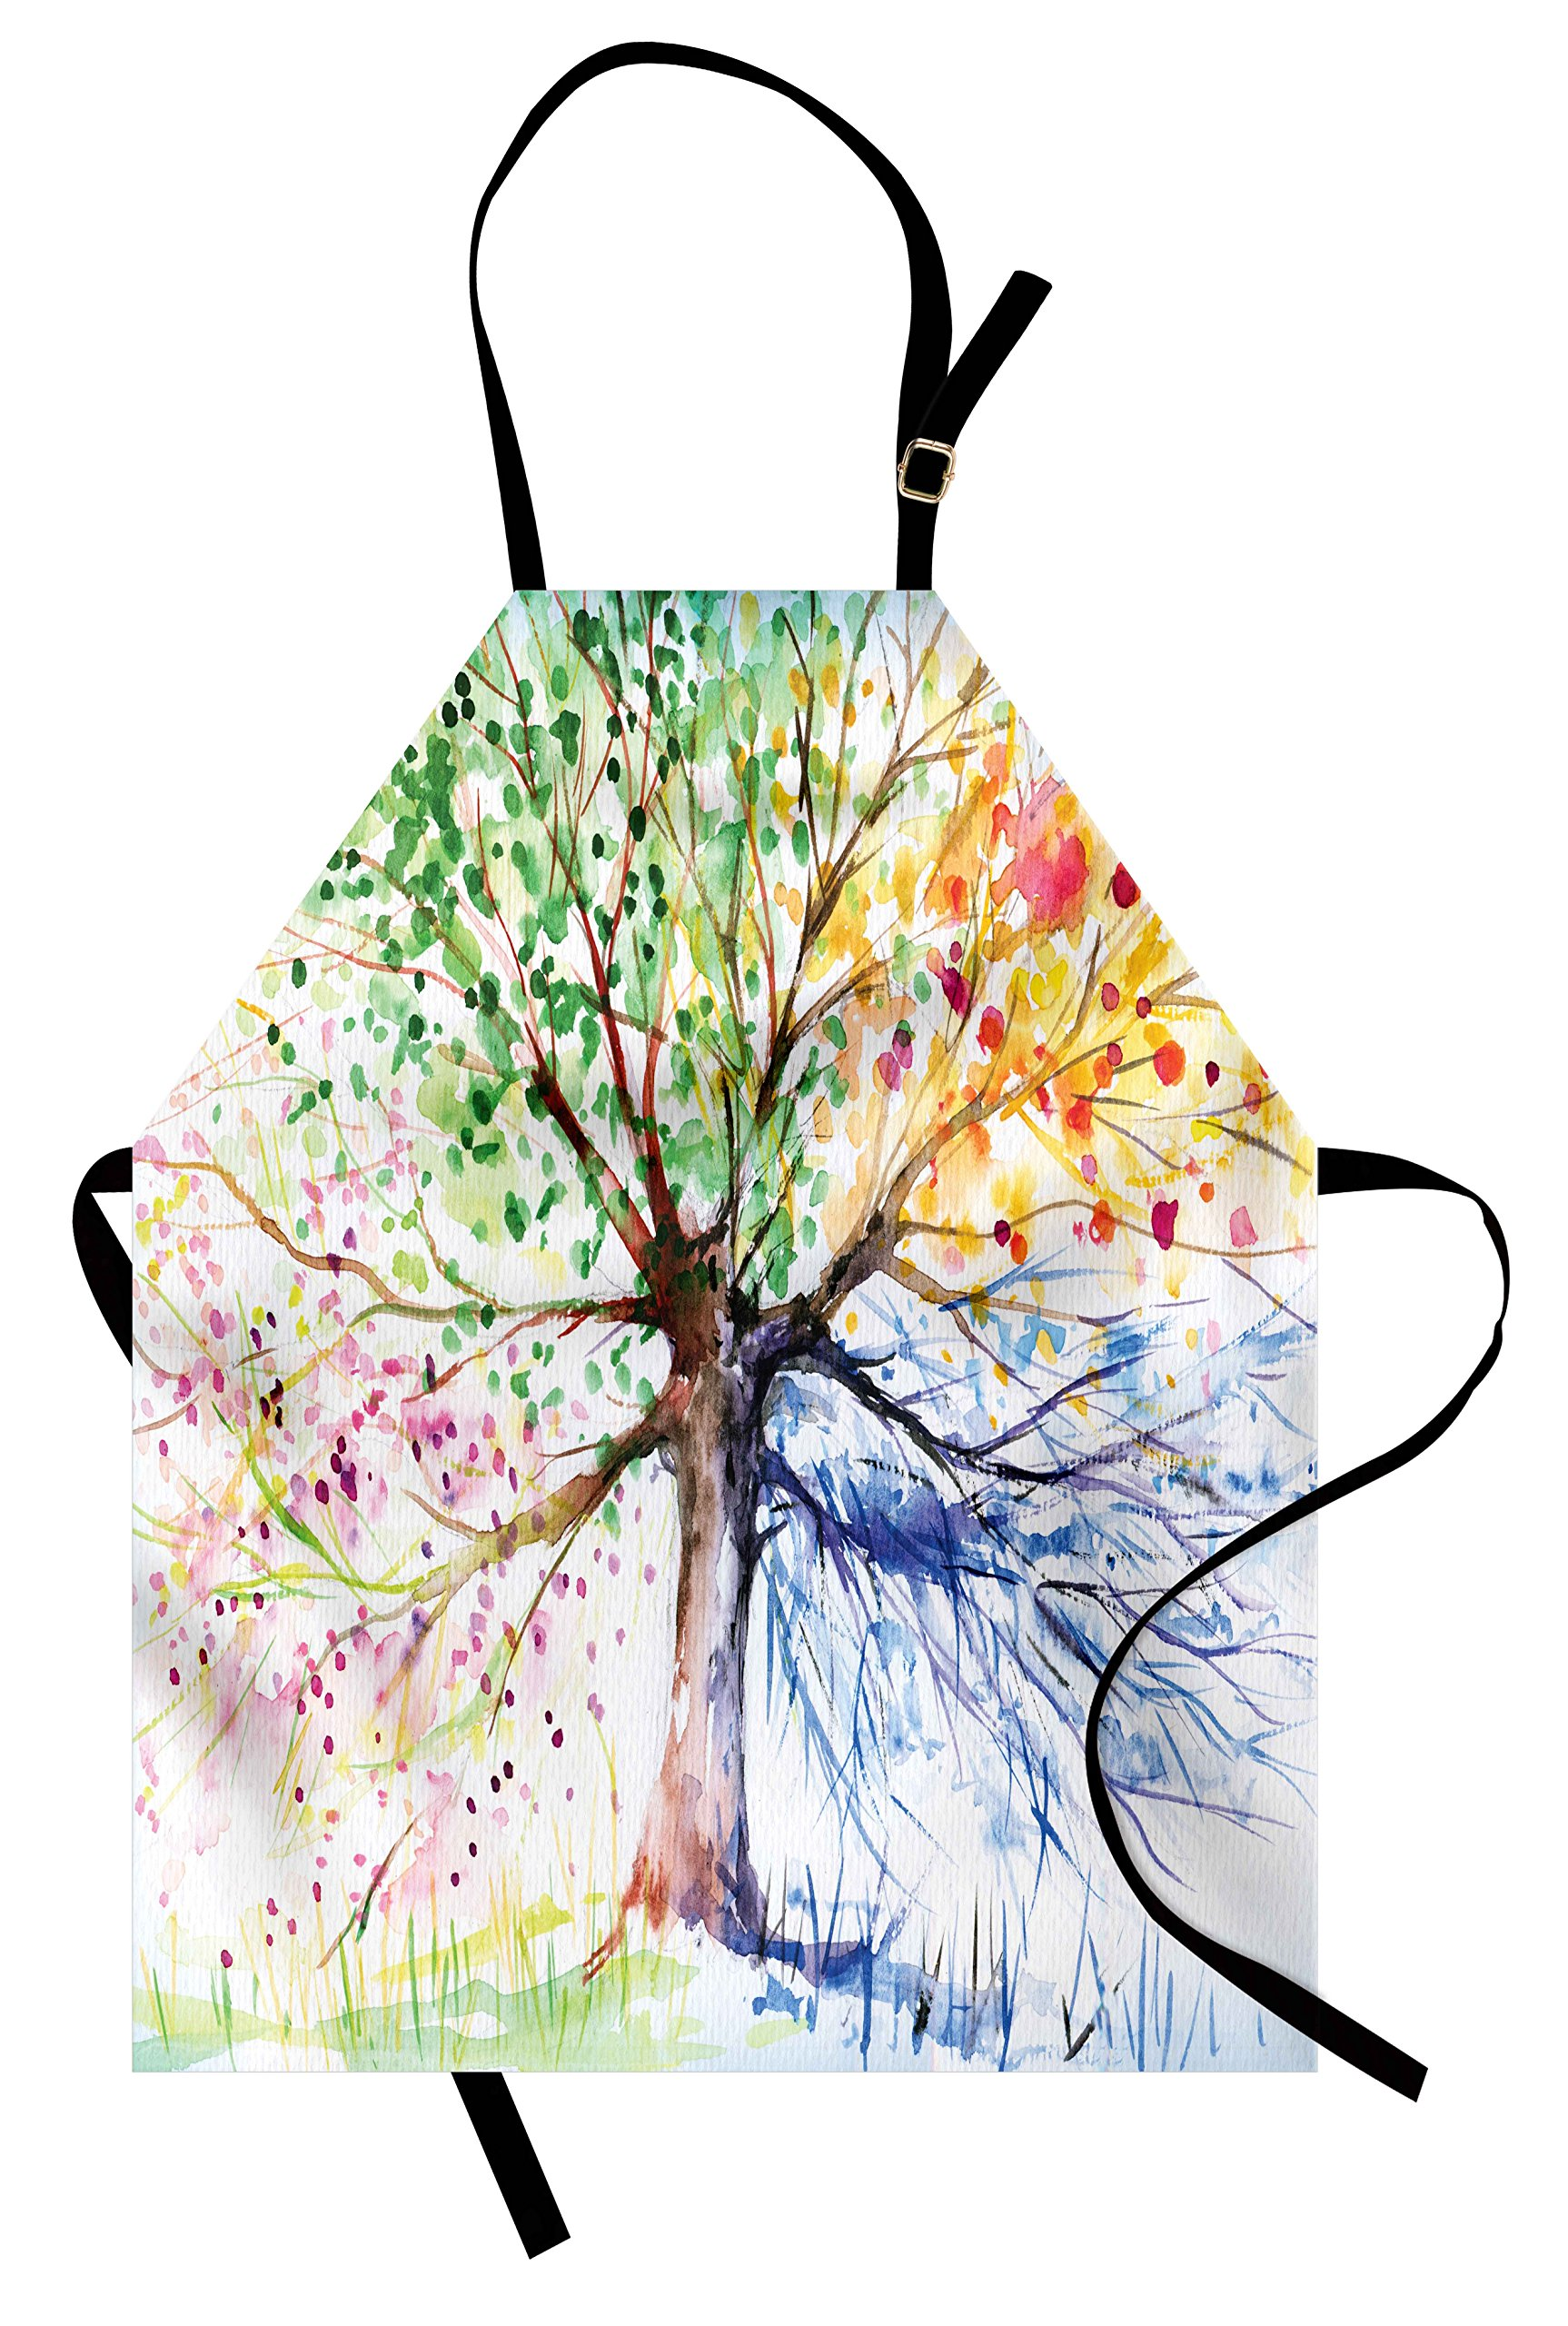 Ambesonne Tree Apron, Watercolor Style Artistic Tree with Colorful Blooming Branches Four Seasons Theme, Unisex Kitchen Bib Apron with Adjustable Neck for Cooking Baking Gardening, Multicolor